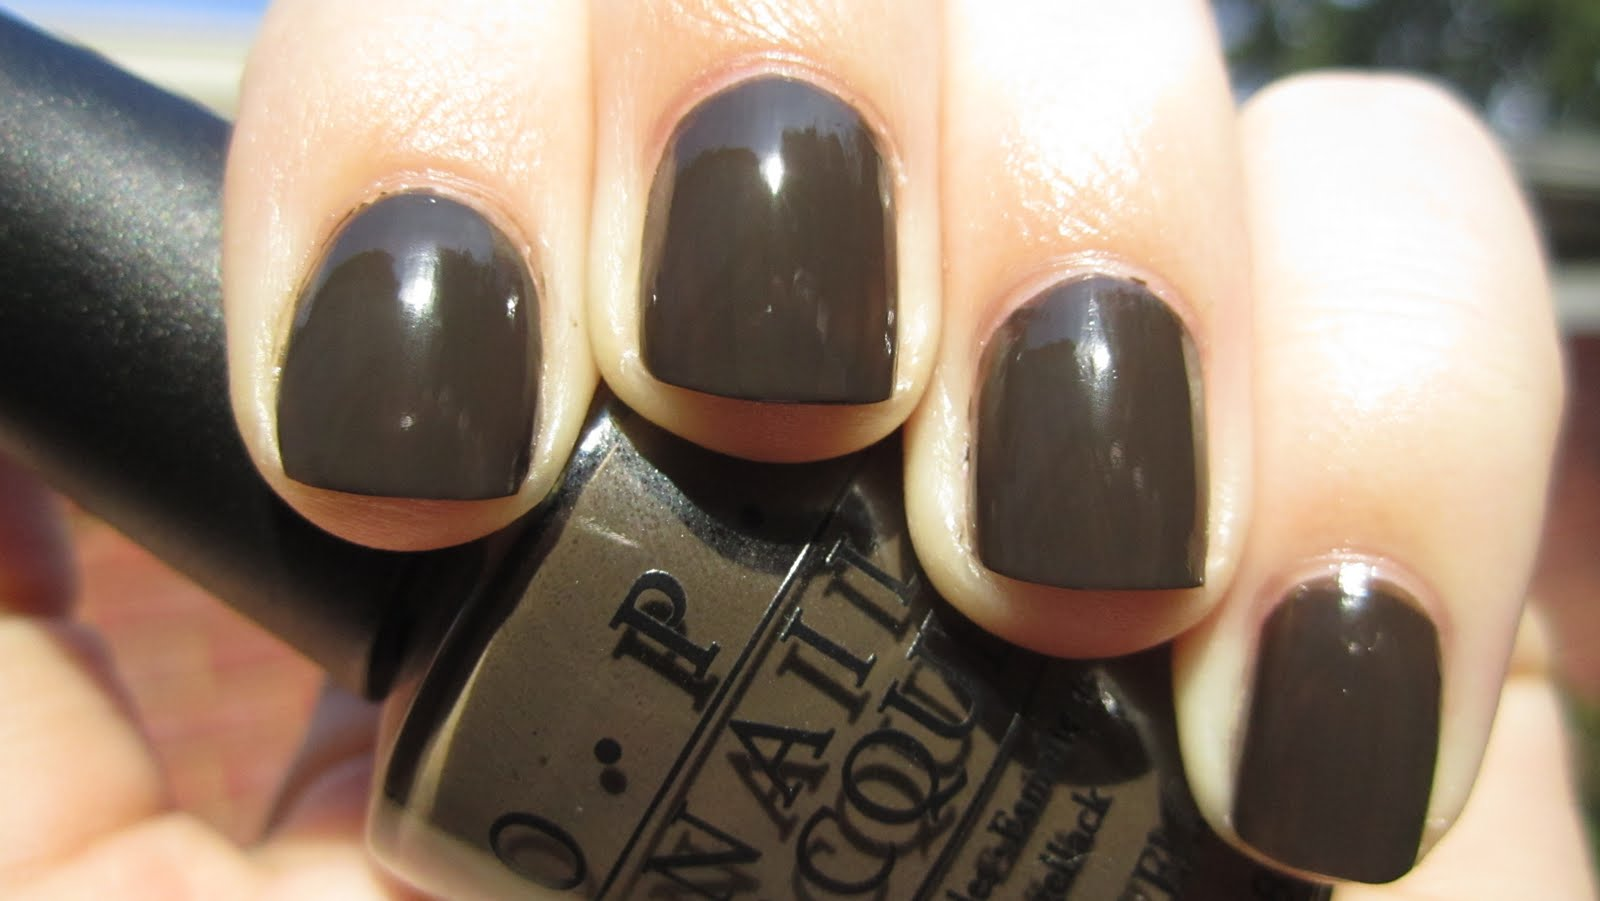 deep coffee colored brown that is going to be on my nails a lot this